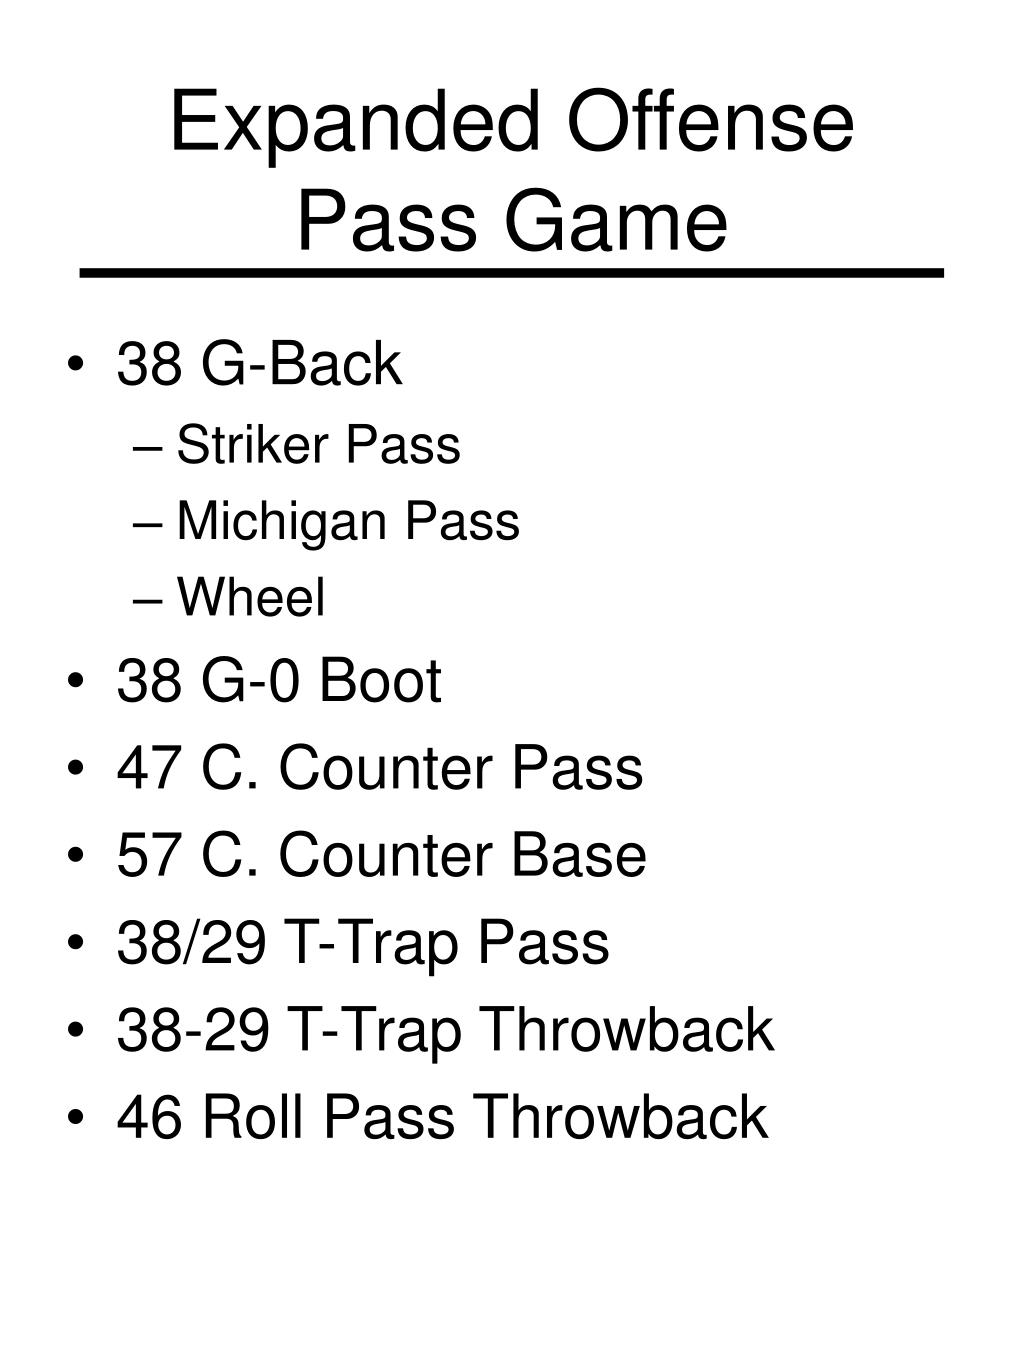 Expanded Offense Pass Game